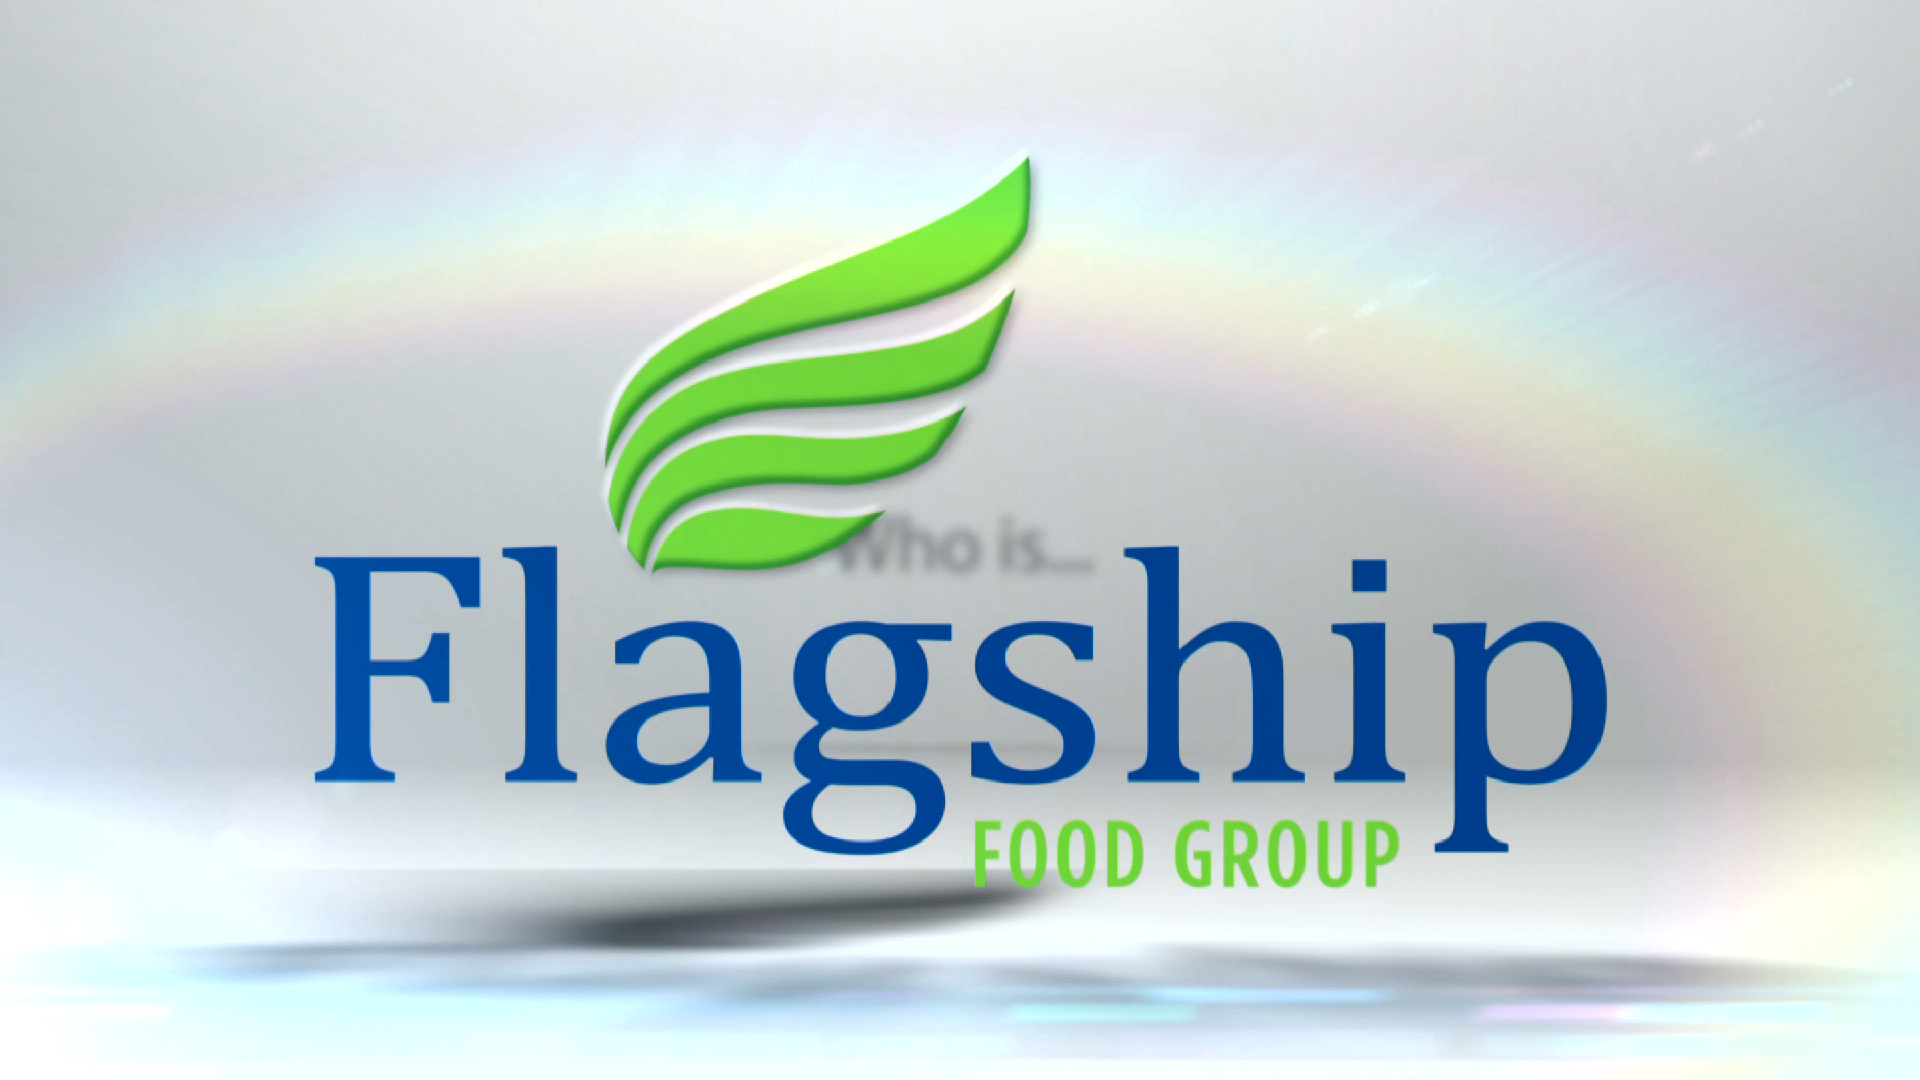 Los Angeles production company Tiger House Films Flagship Food Group commercial